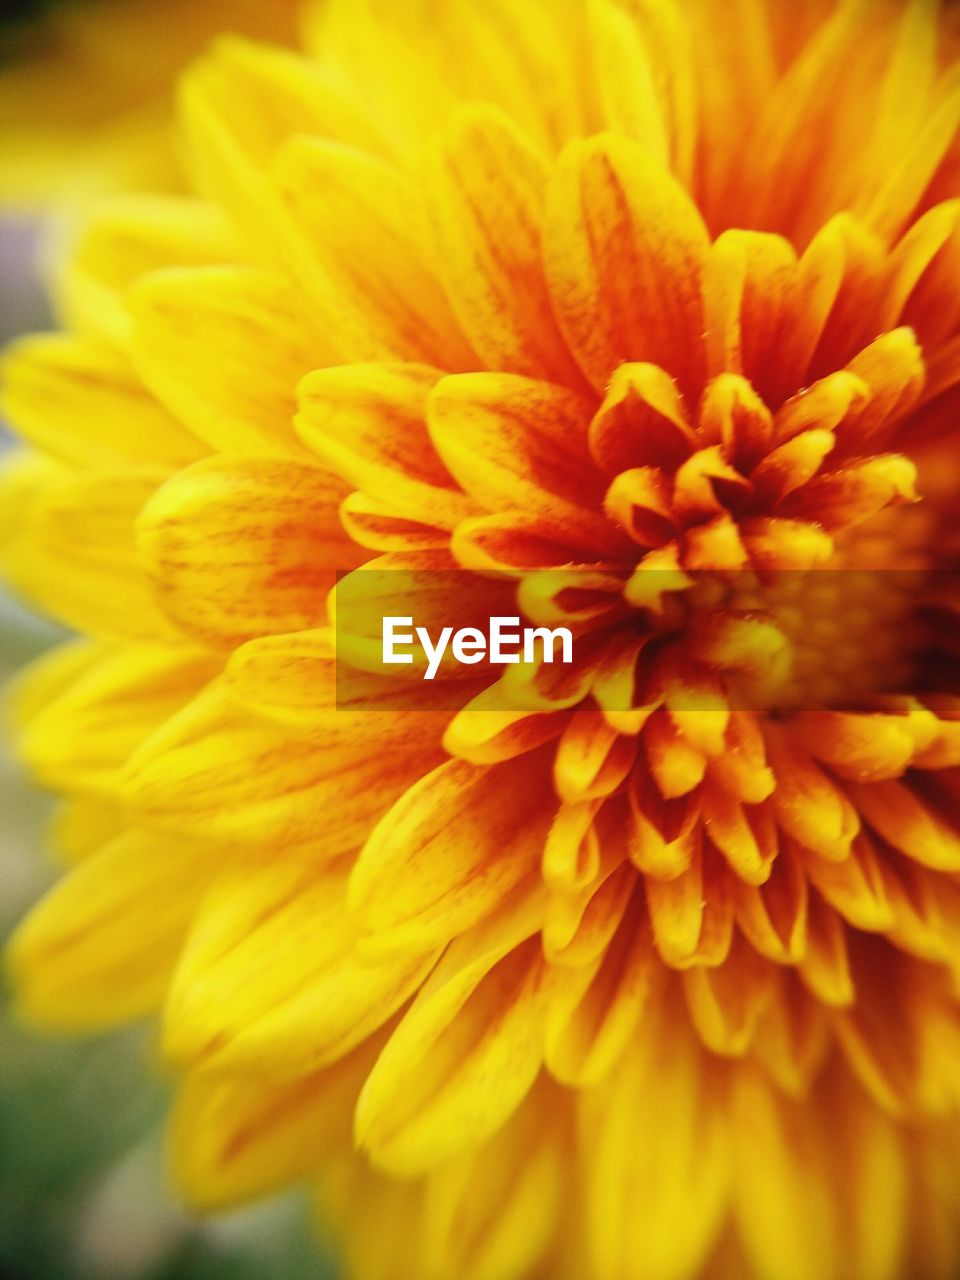 flower, petal, fragility, beauty in nature, flower head, freshness, nature, growth, close-up, yellow, no people, pollen, backgrounds, day, outdoors, plant, blooming